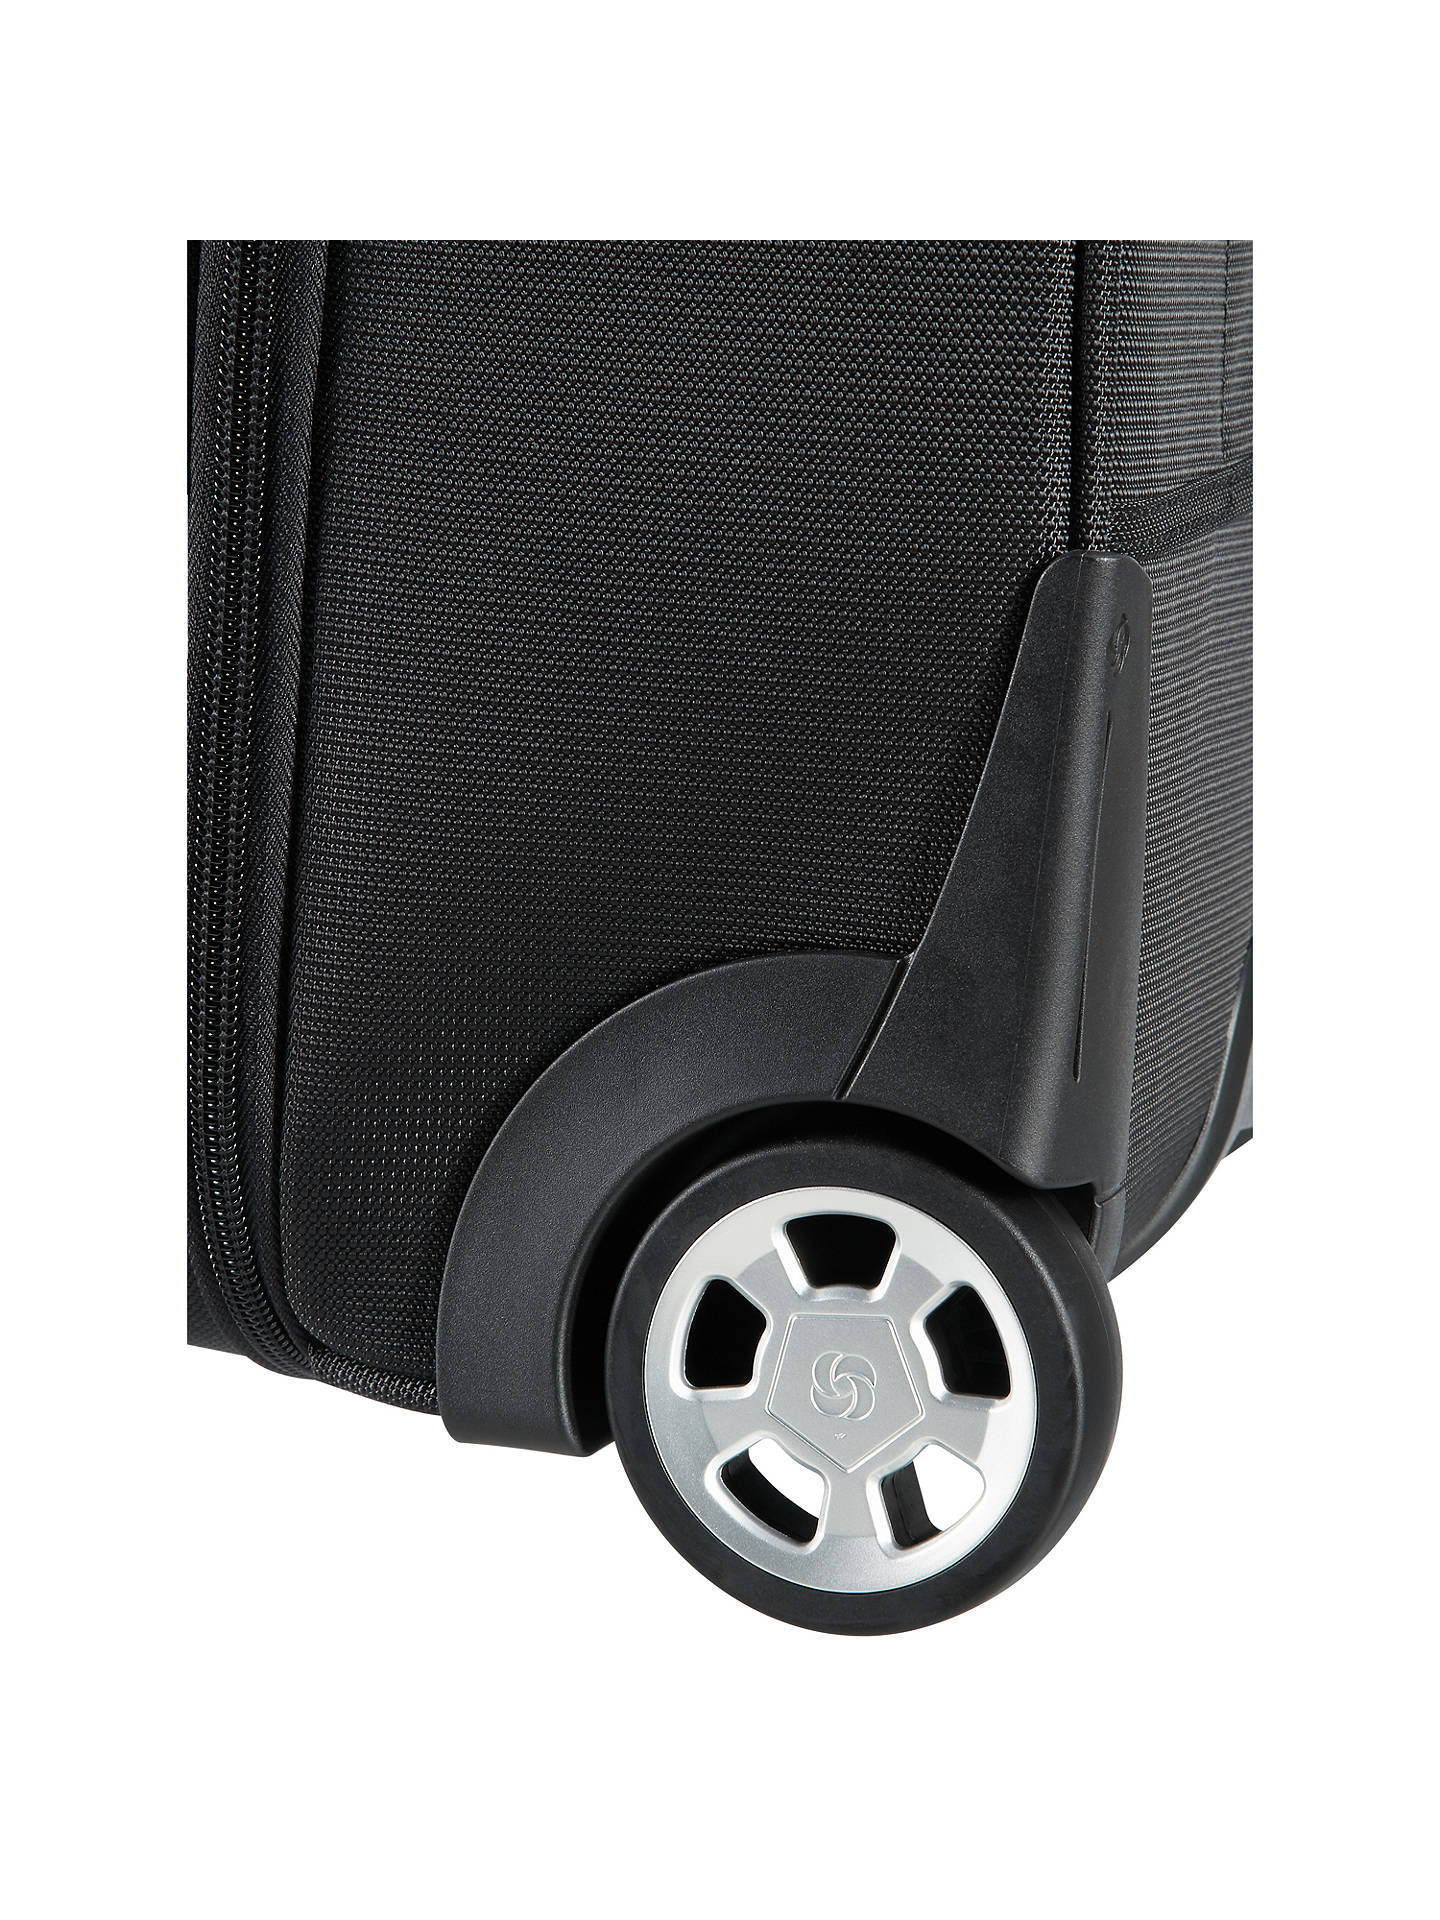 BuySamsonite XBR 40cm Rolling Tote Case, Black Online at johnlewis.com